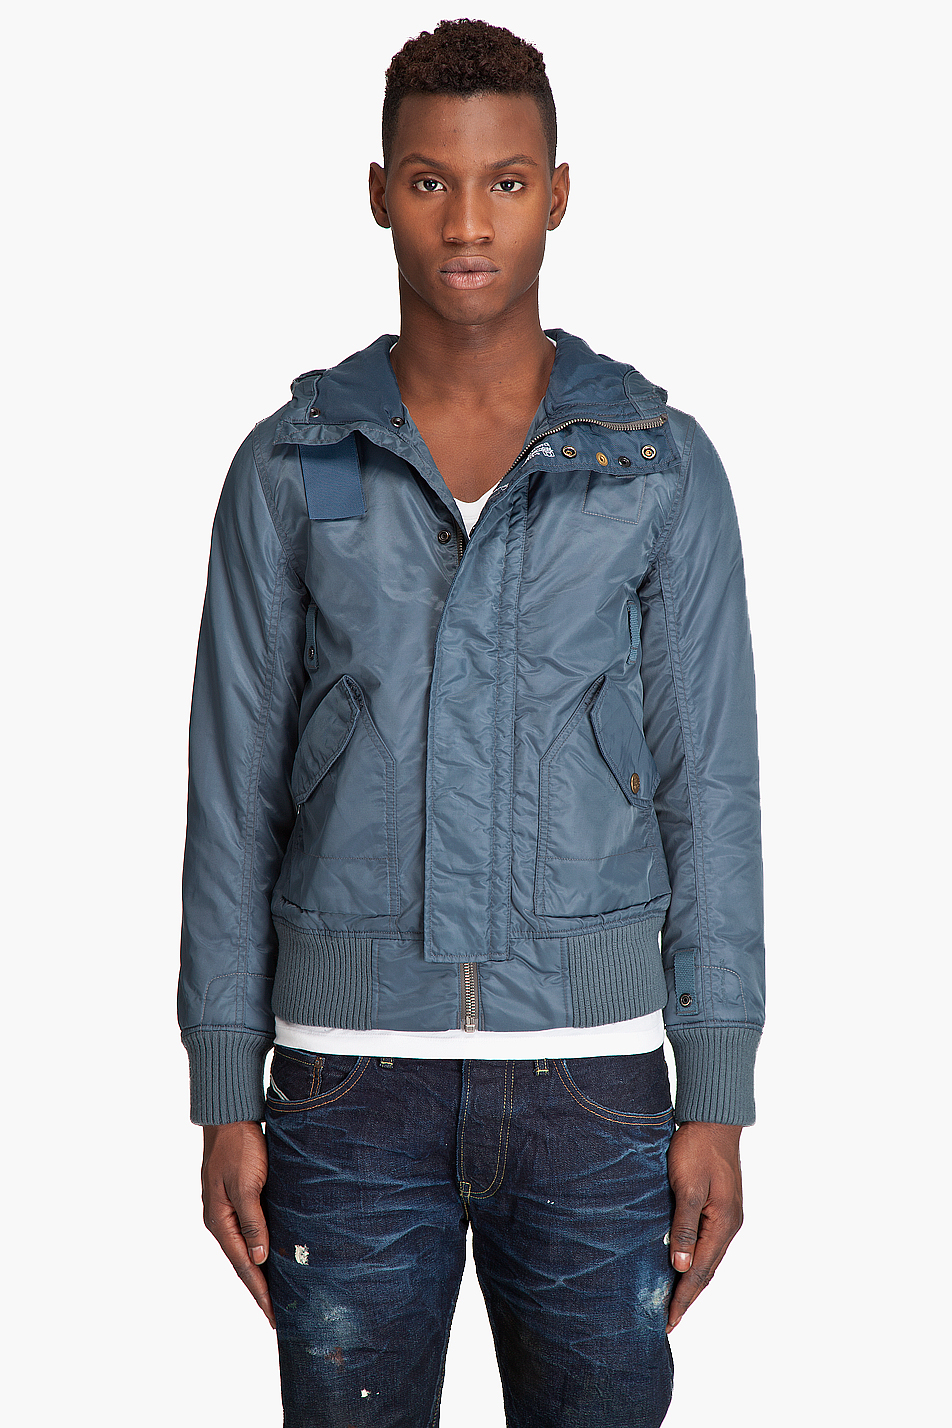 lyst g star raw mfd bomber jacket in blue for men. Black Bedroom Furniture Sets. Home Design Ideas